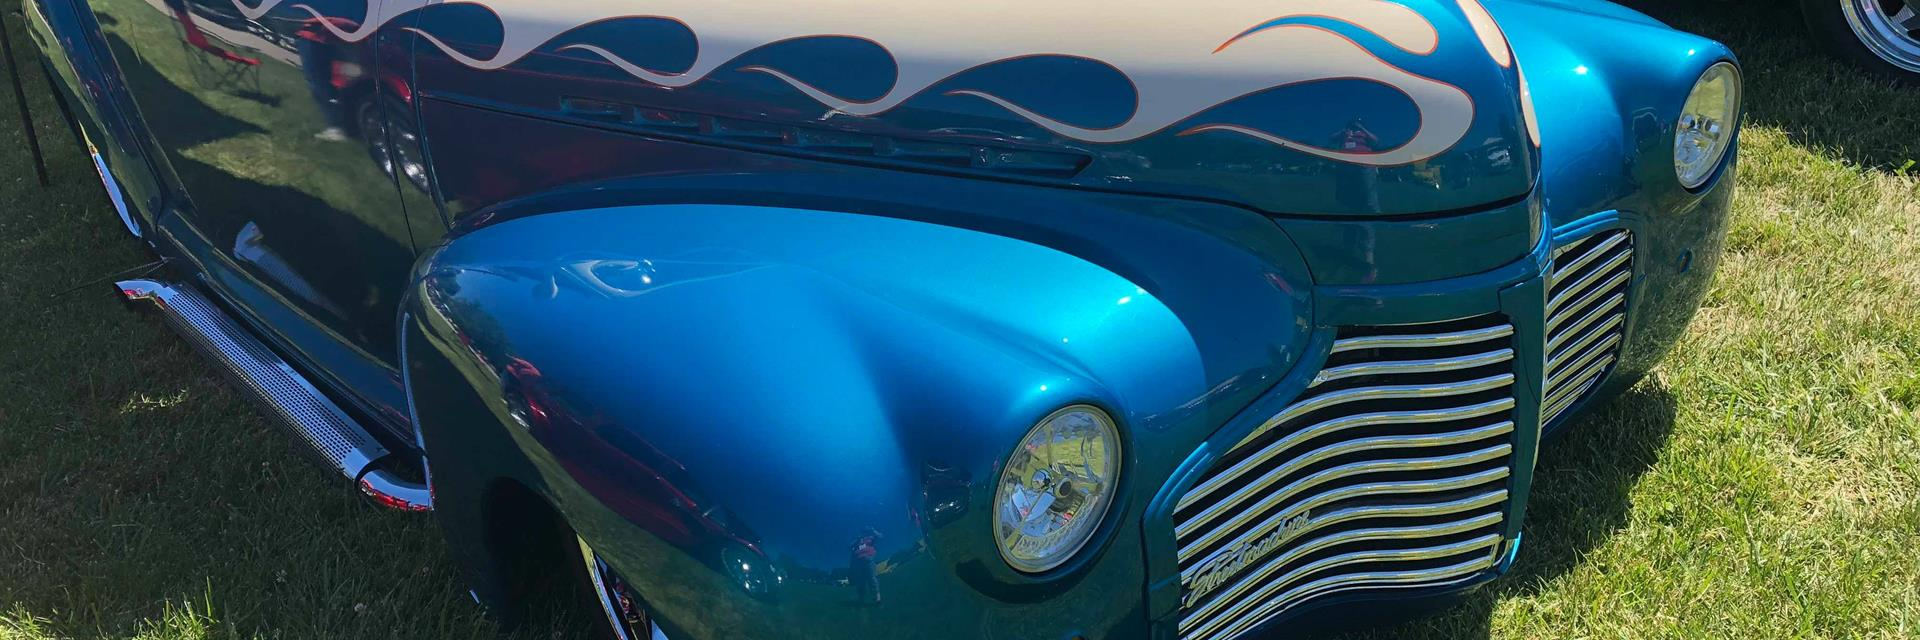 a blue and silver classic car on display at a classic car show in chatham-kent